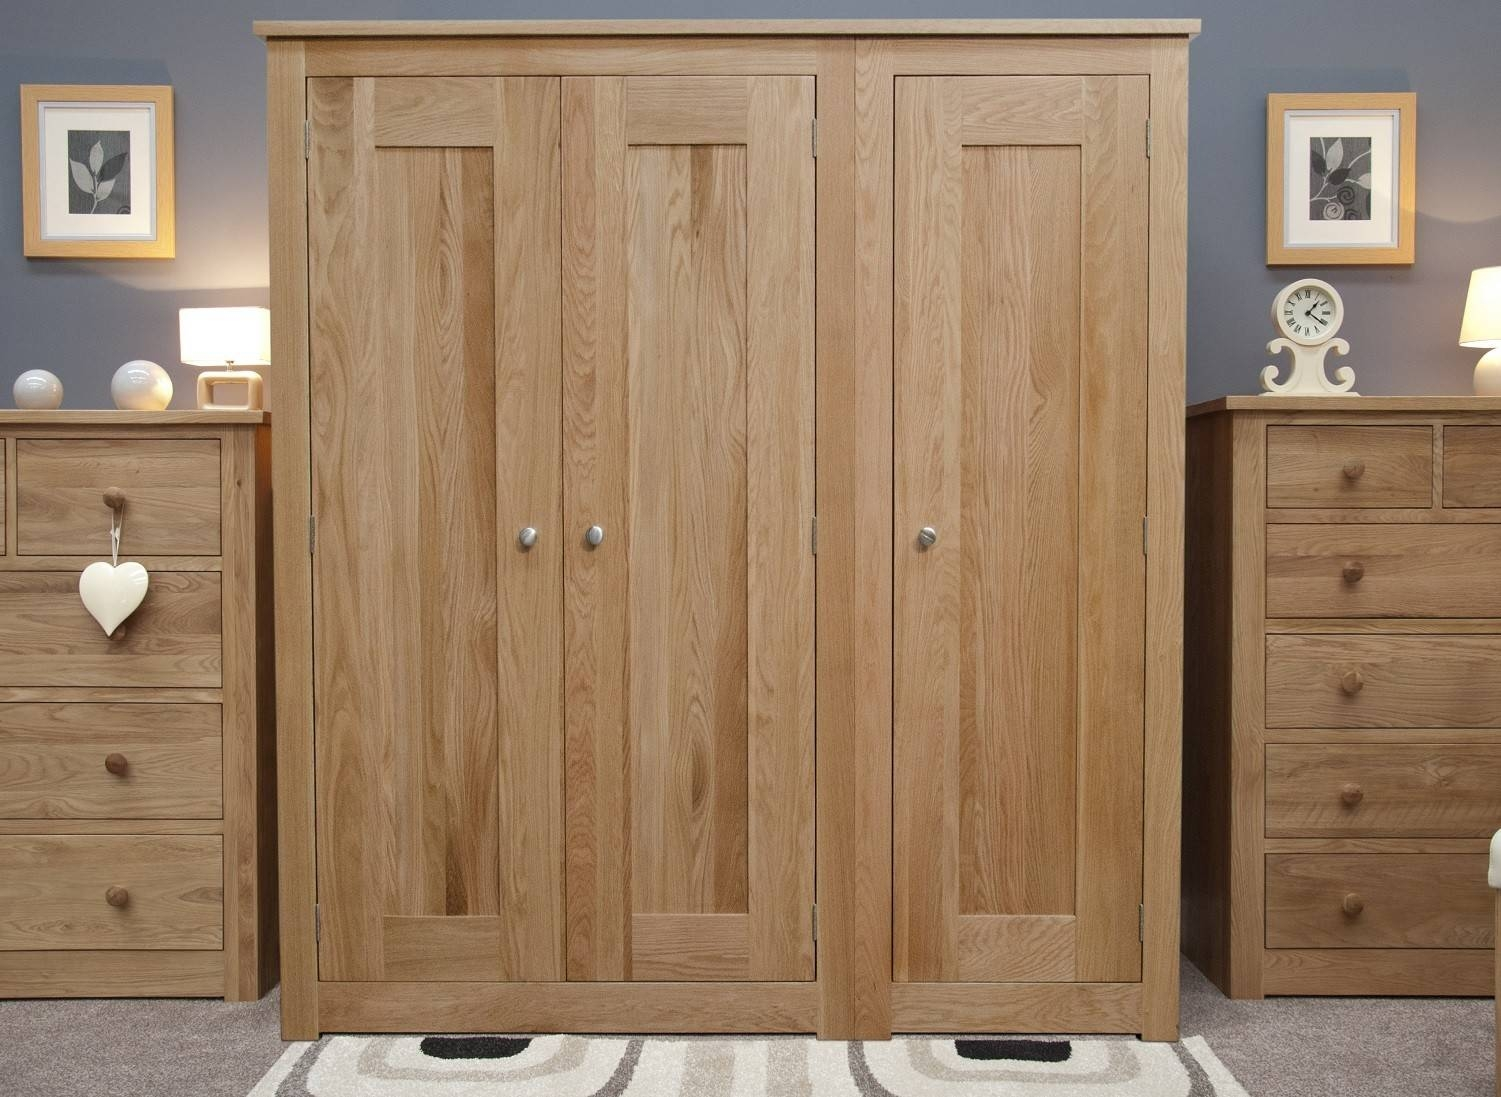 Oak Wardrobes | Oak Furniture Uk for Cheap Triple Wardrobes (Image 5 of 15)